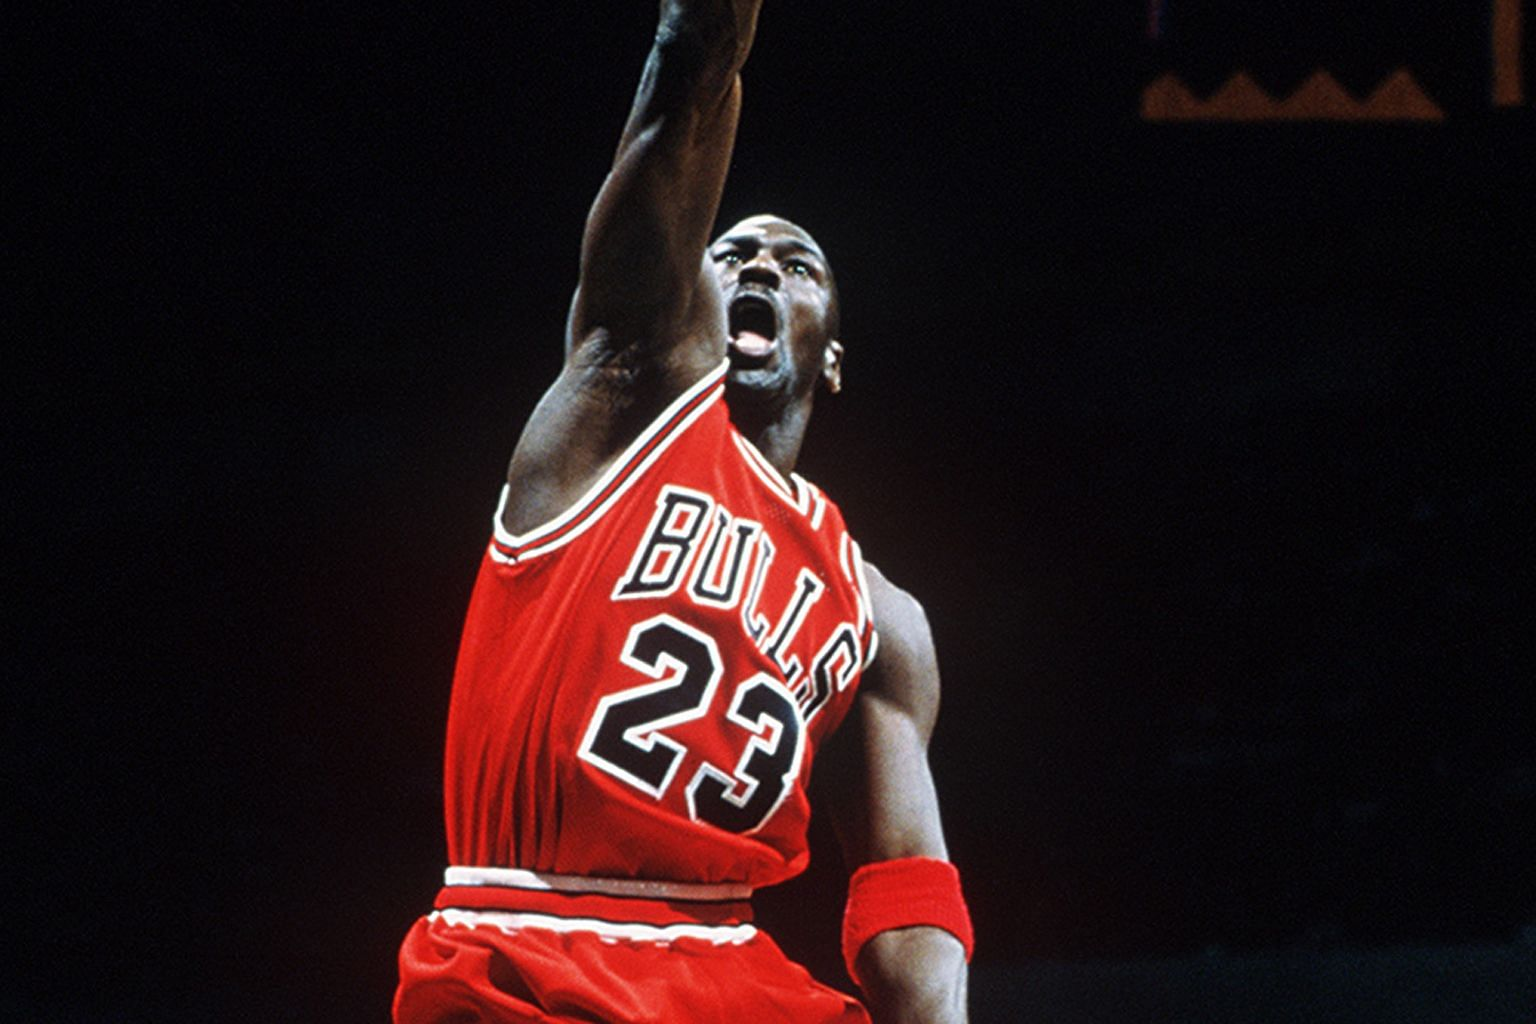 """While most basketball fans know Michael Jordan's """"Air"""" nickname, what was lesser known was his shared moniker with his basketball hero, Earvin """"Magic"""" Johnson."""